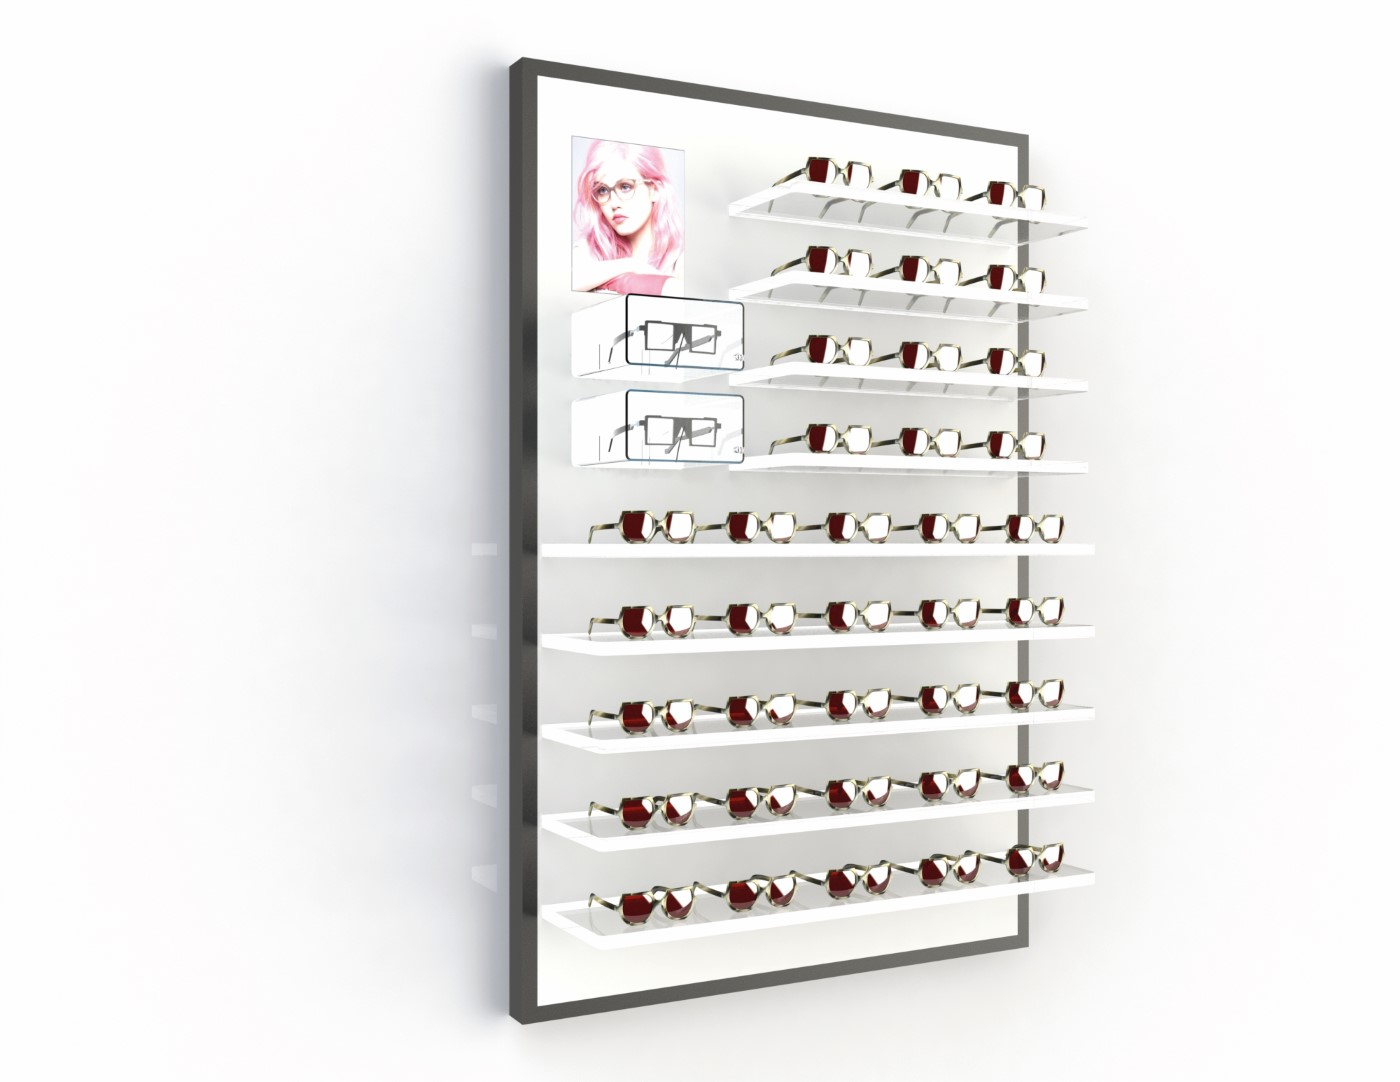 <strong>#58152B/L</strong><br>9x 20mm acrylic shelves<br>2 highlight boxes<br>illuminated banner<br>41 frames